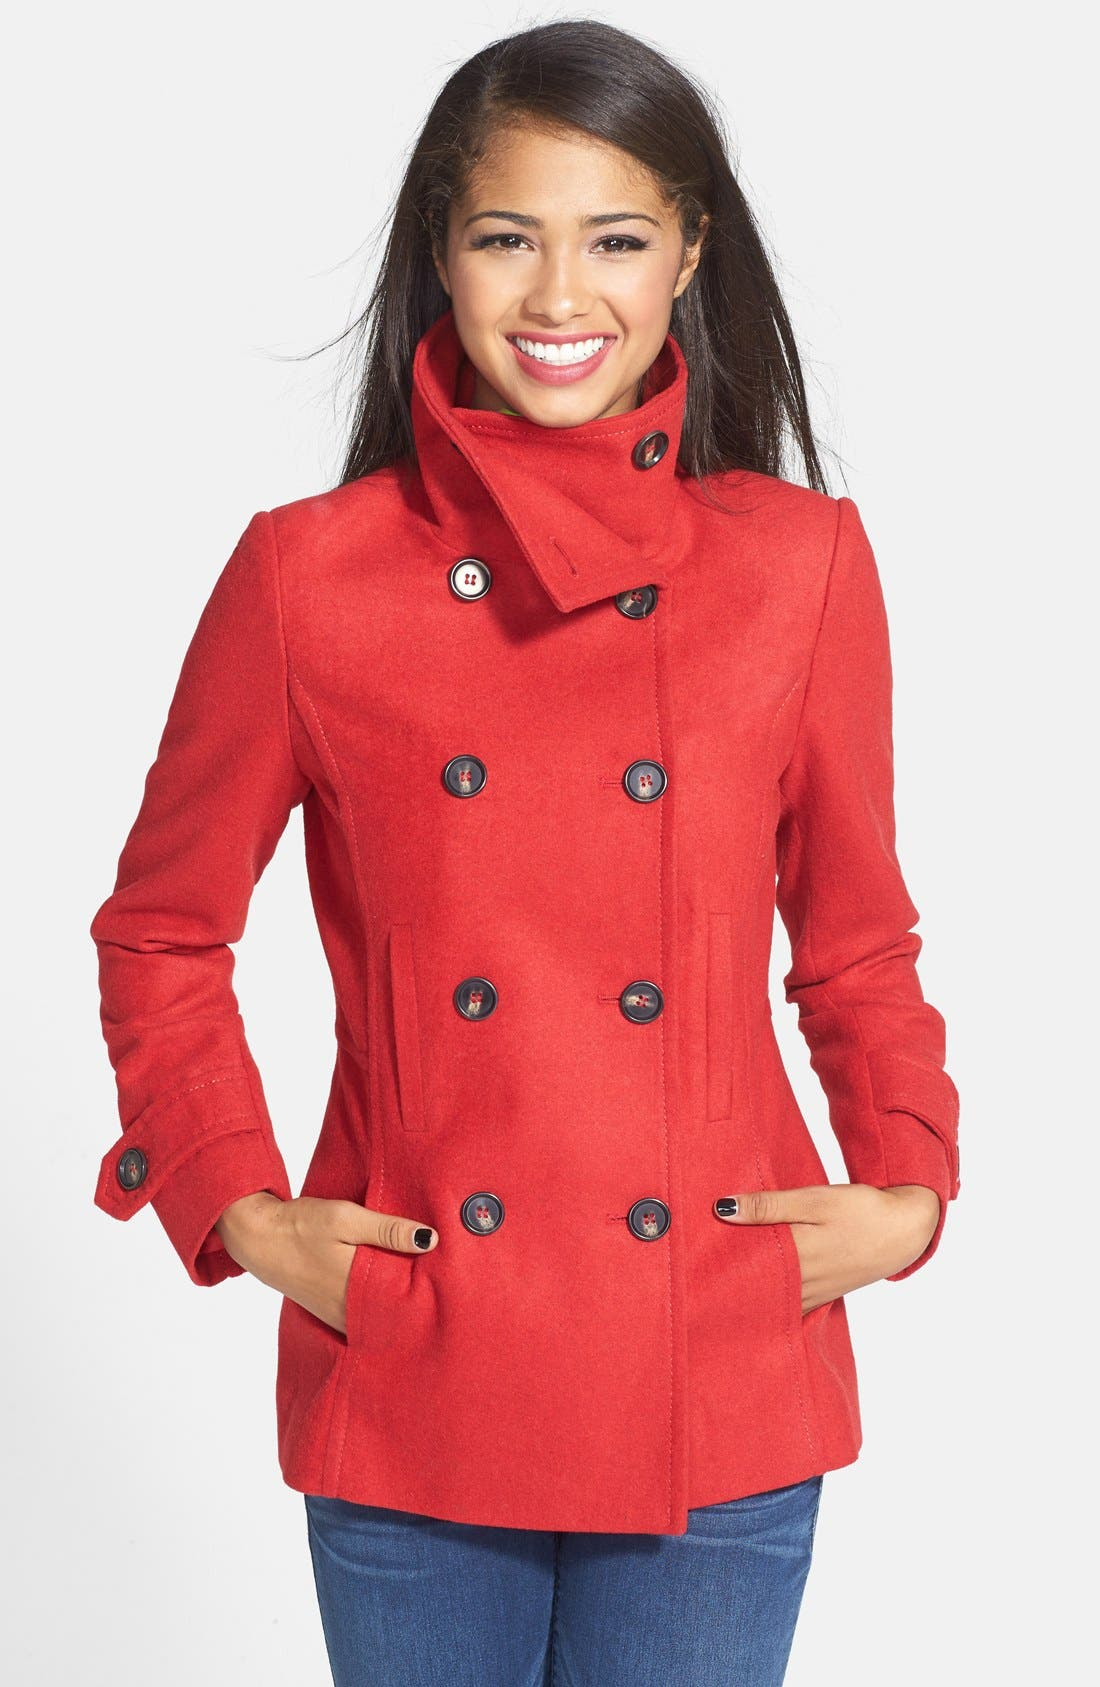 Shop for red pea coat online at Target. Free shipping on purchases over $35 and save 5% every day with your Target REDcard.